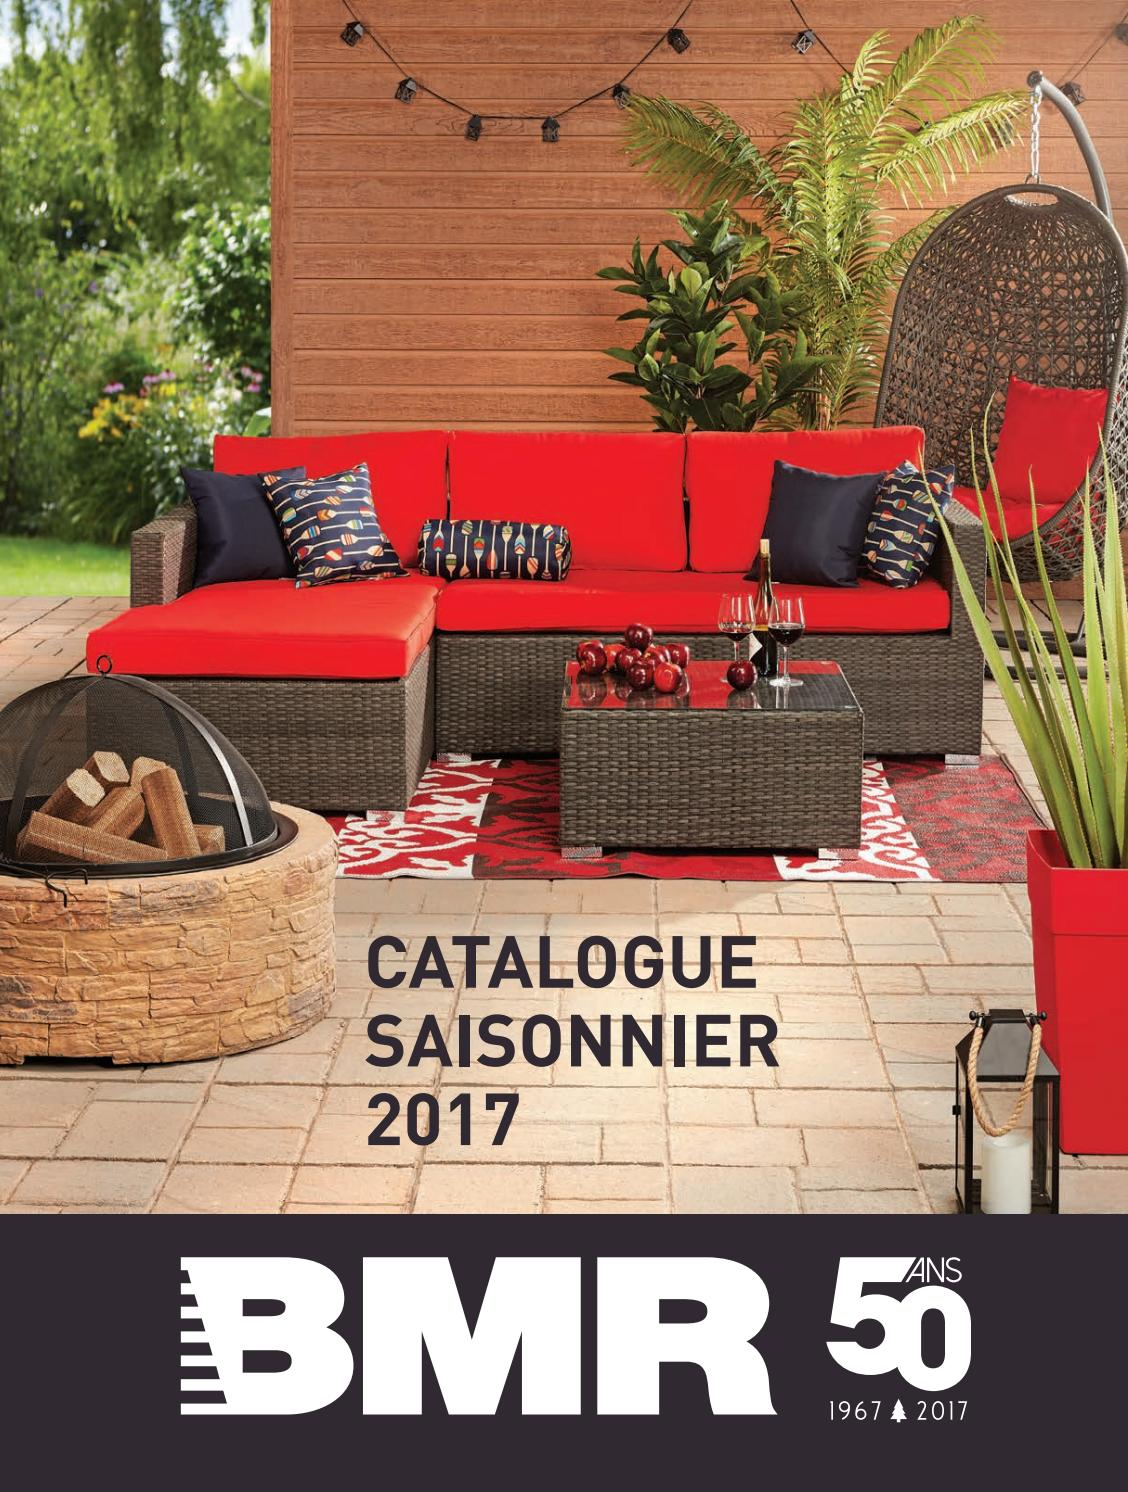 Catalogue Saisonnier Bmr 2017 By Groupe Bmr Issuu